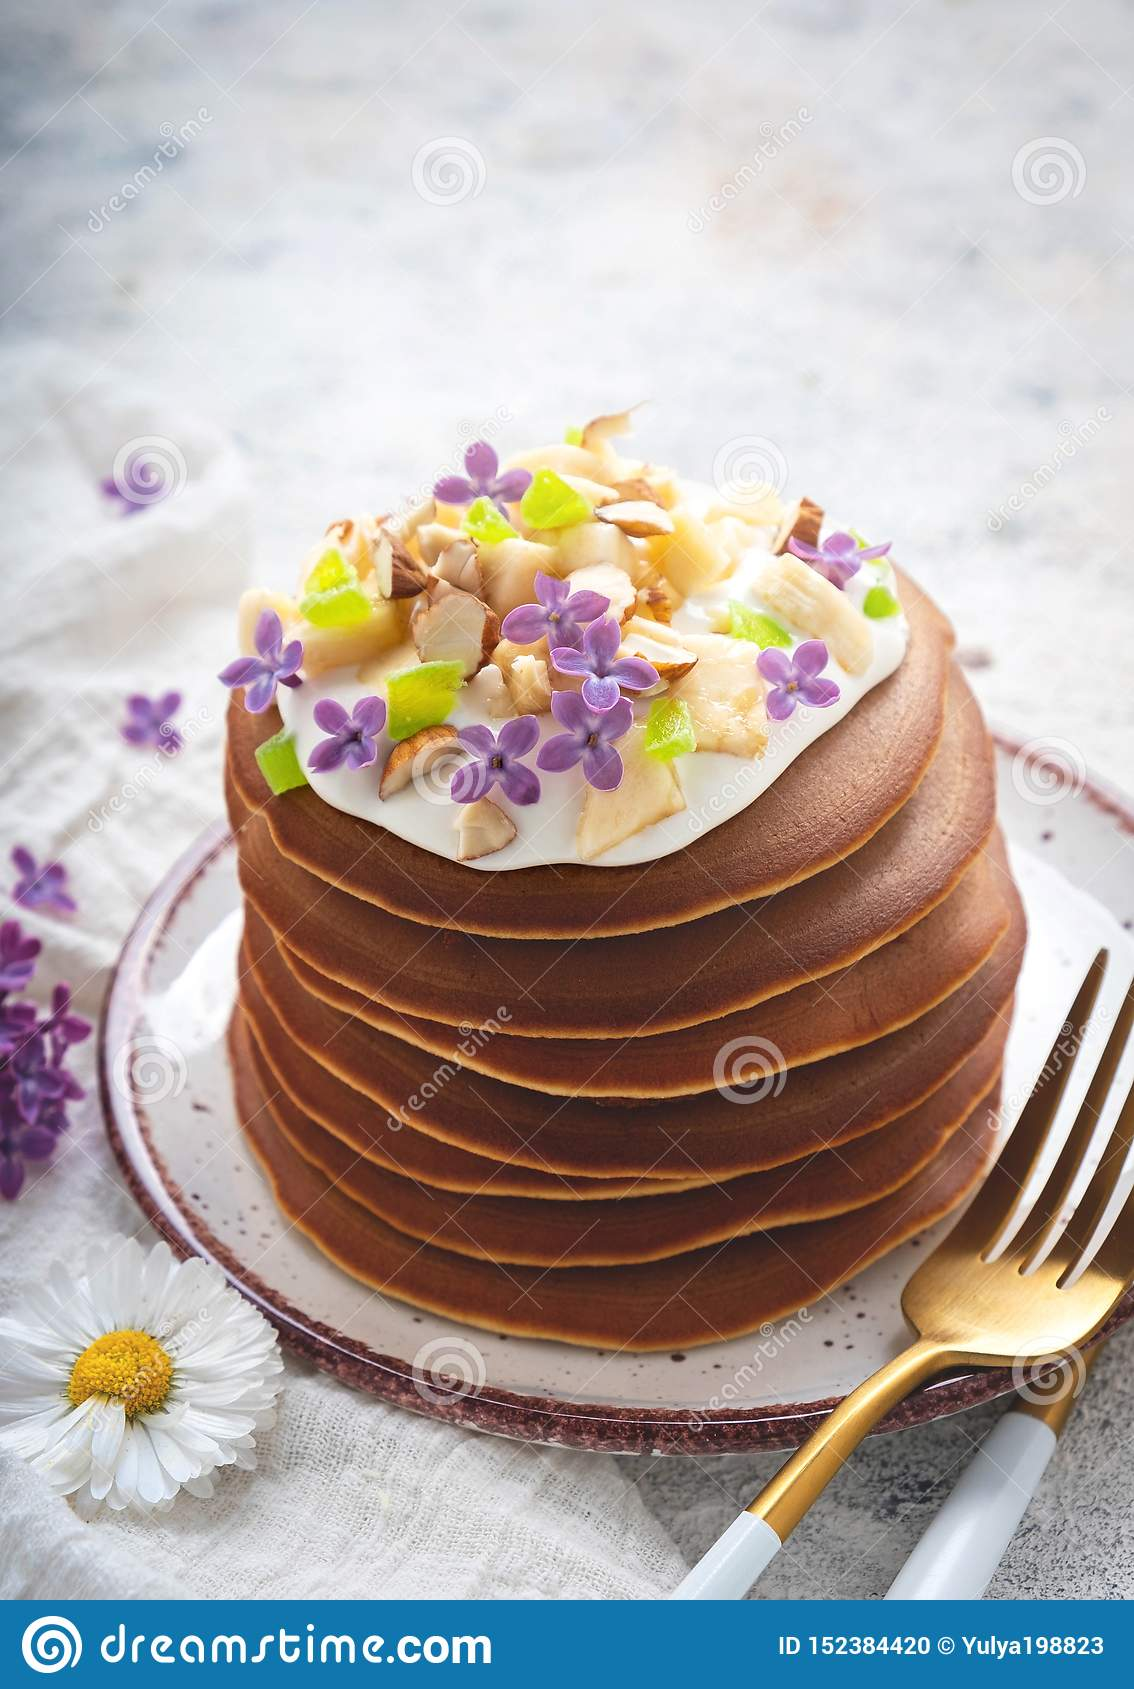 A stack of pancakes on a plate with sauce, bananas, candied fruits and decorated with flowers, Close-up,